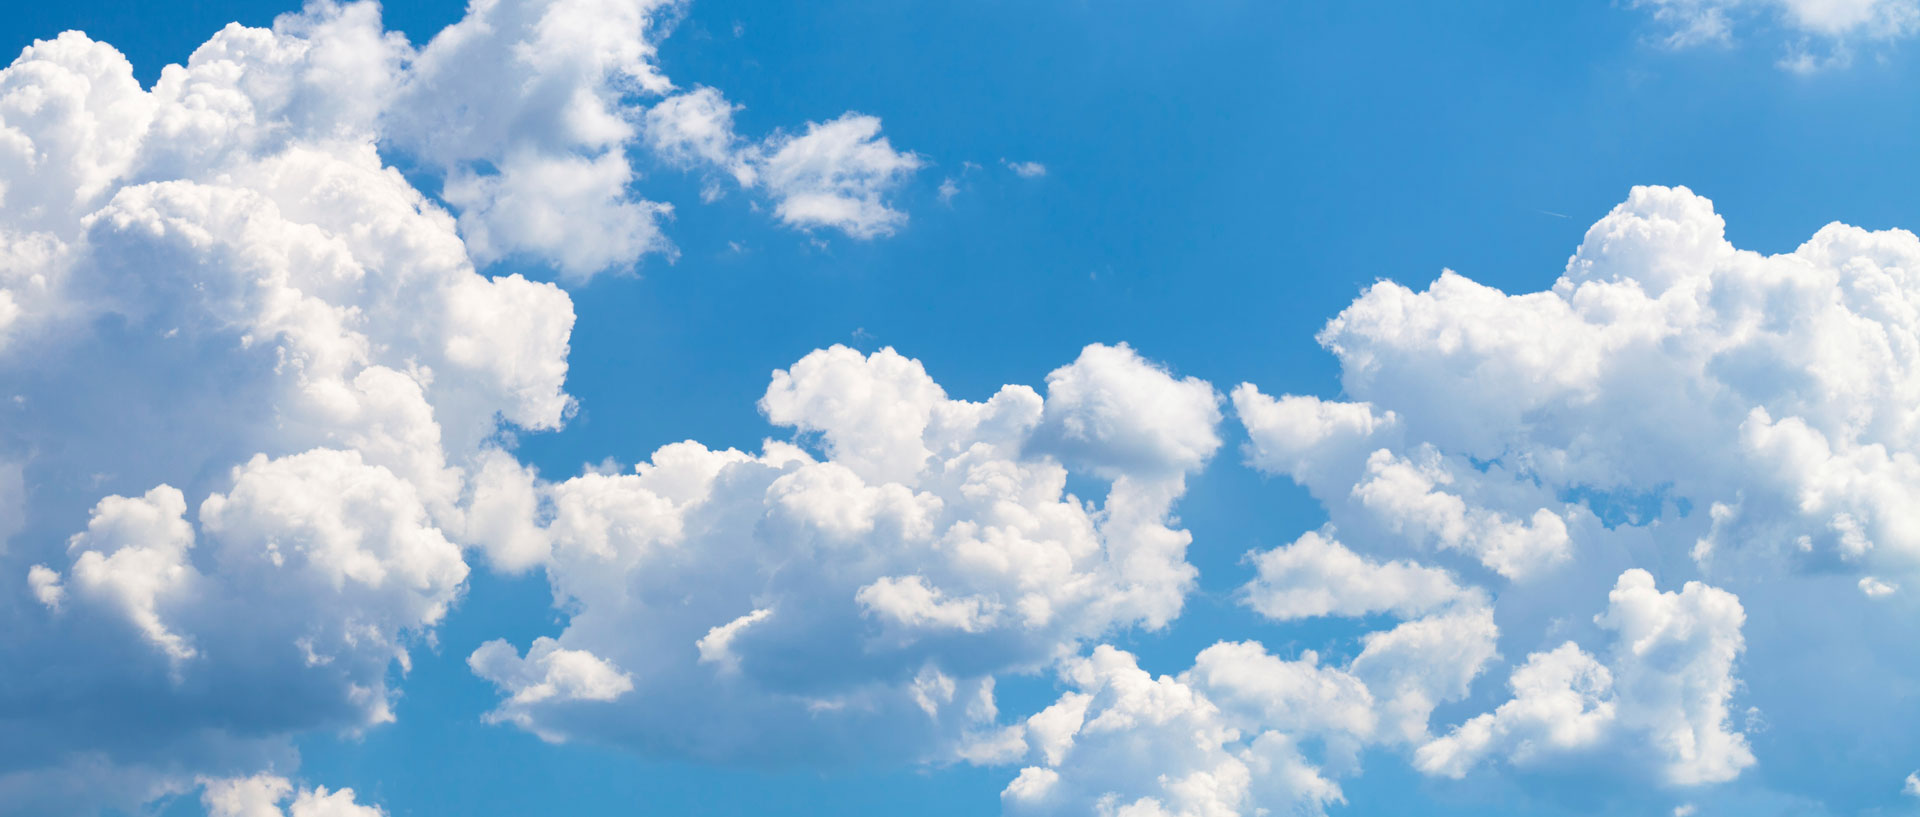 The Best Cloud Storage Services - Consumer Reports | 1920 x 817 jpeg 173kB